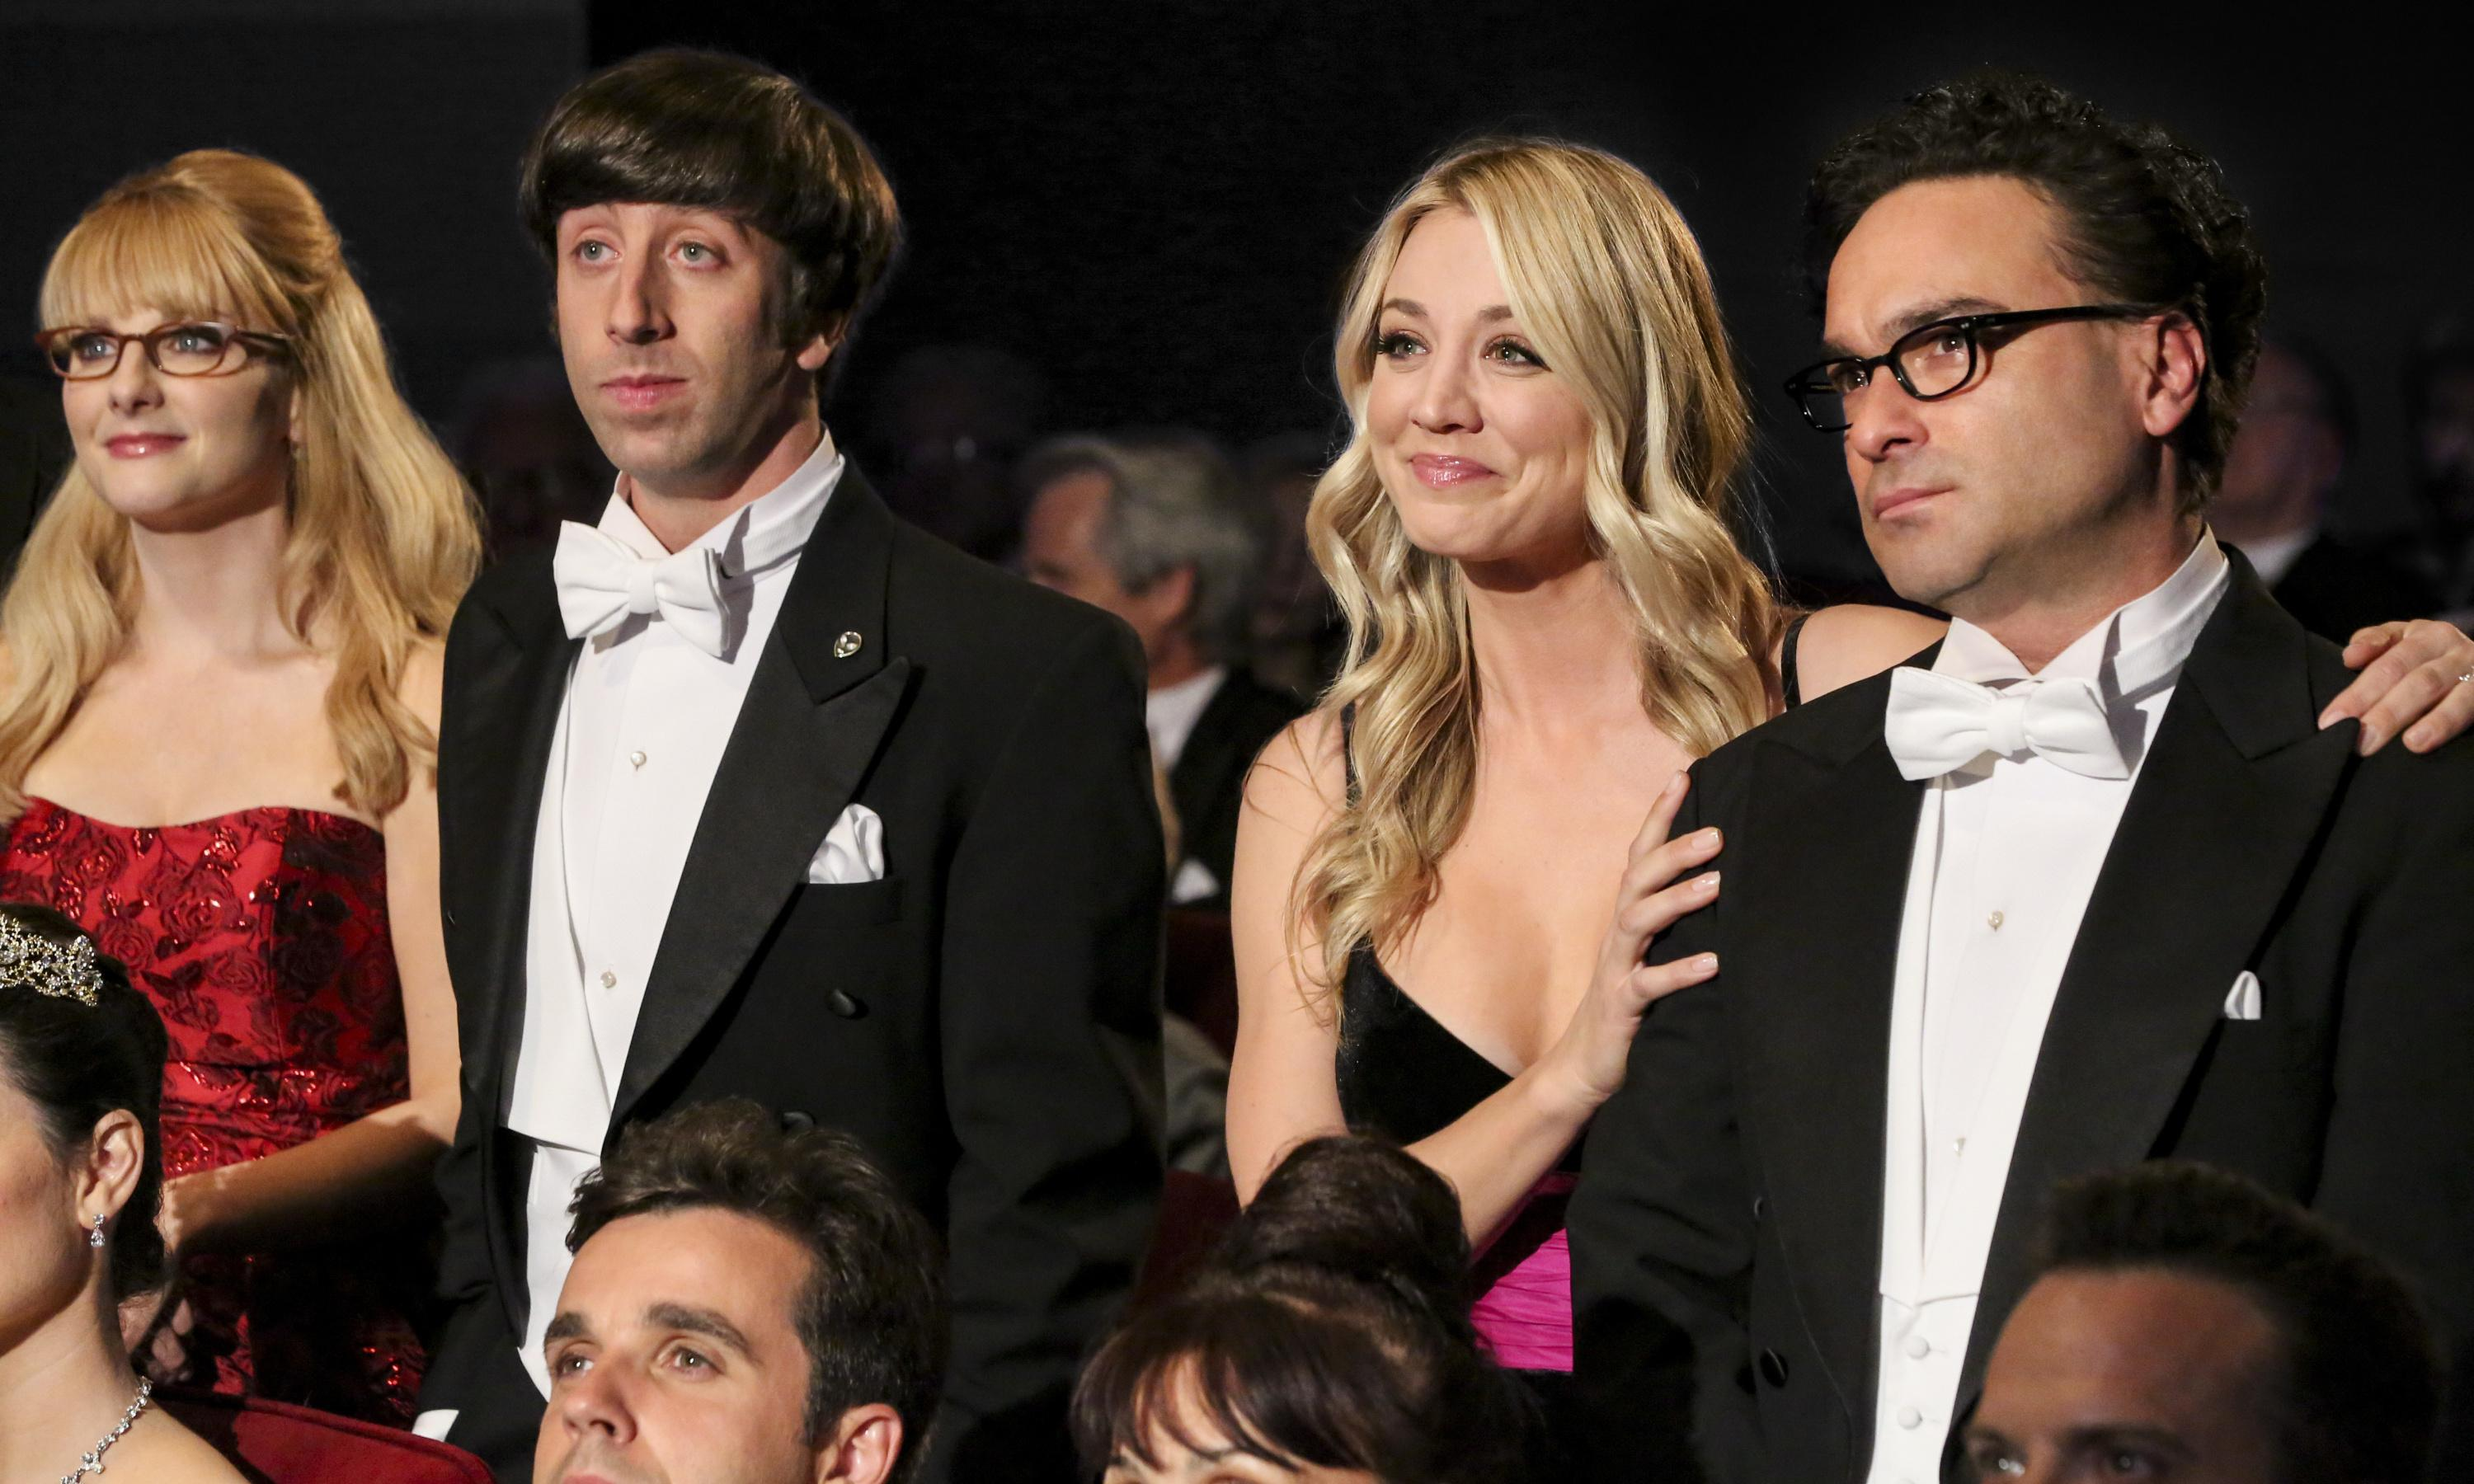 TV tonight: will The Big Bang Theory bow out with a prize-winning finale?